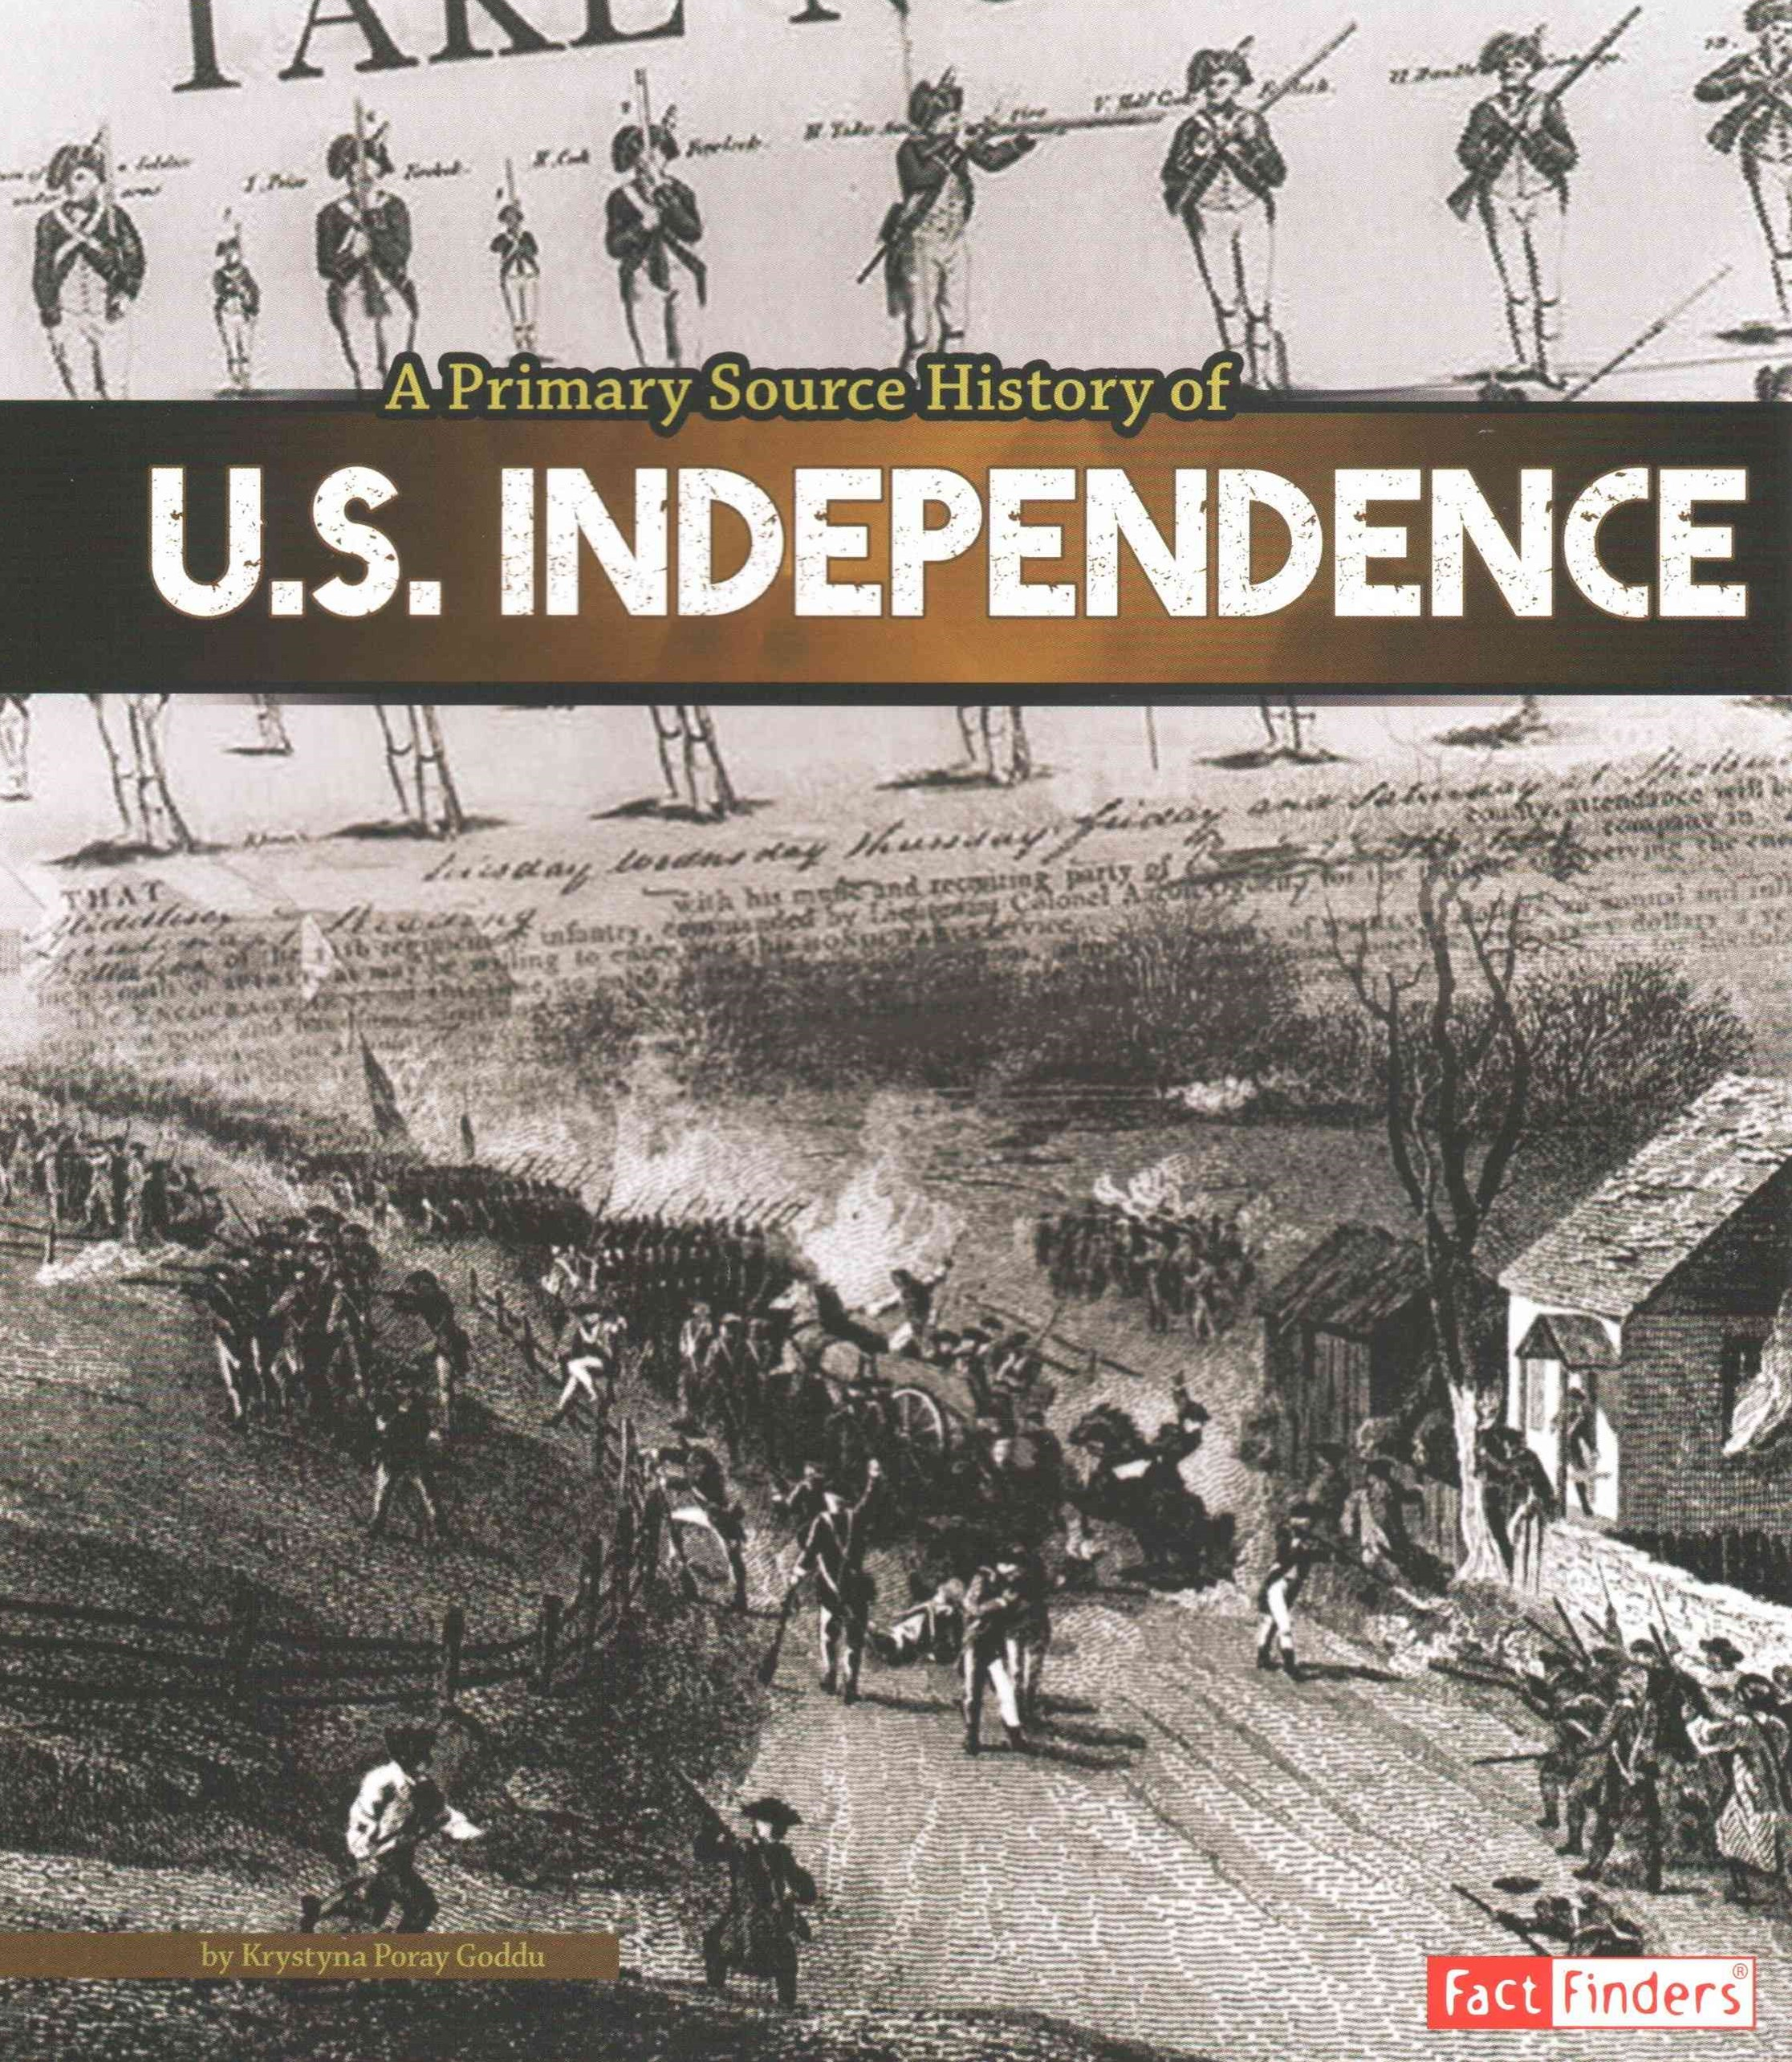 A Primary Source History of U. S. Independence